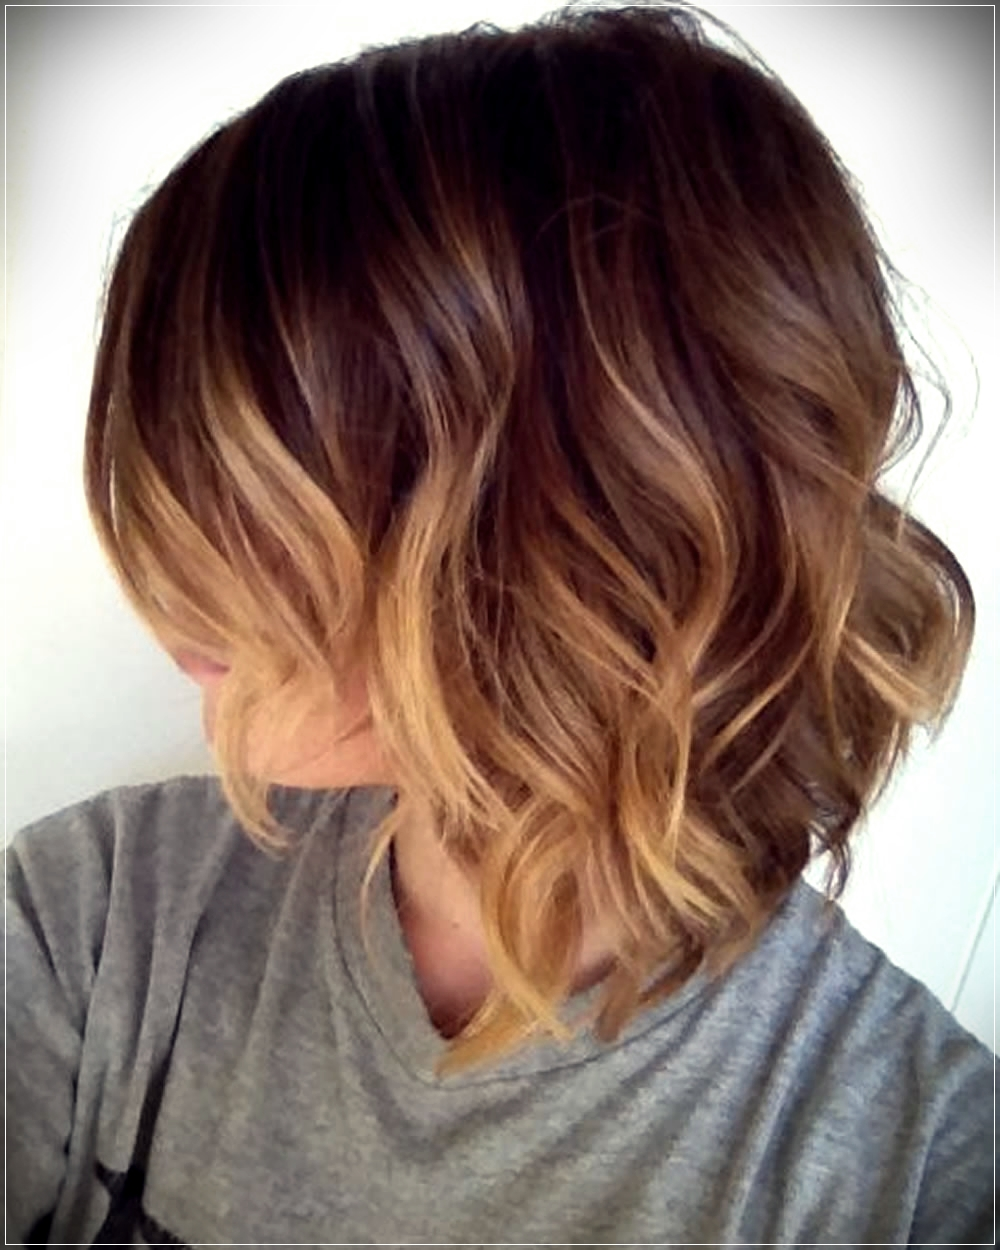 ombre hair ideas for short hair 5 - Some useful ombre hair ideas for short hair